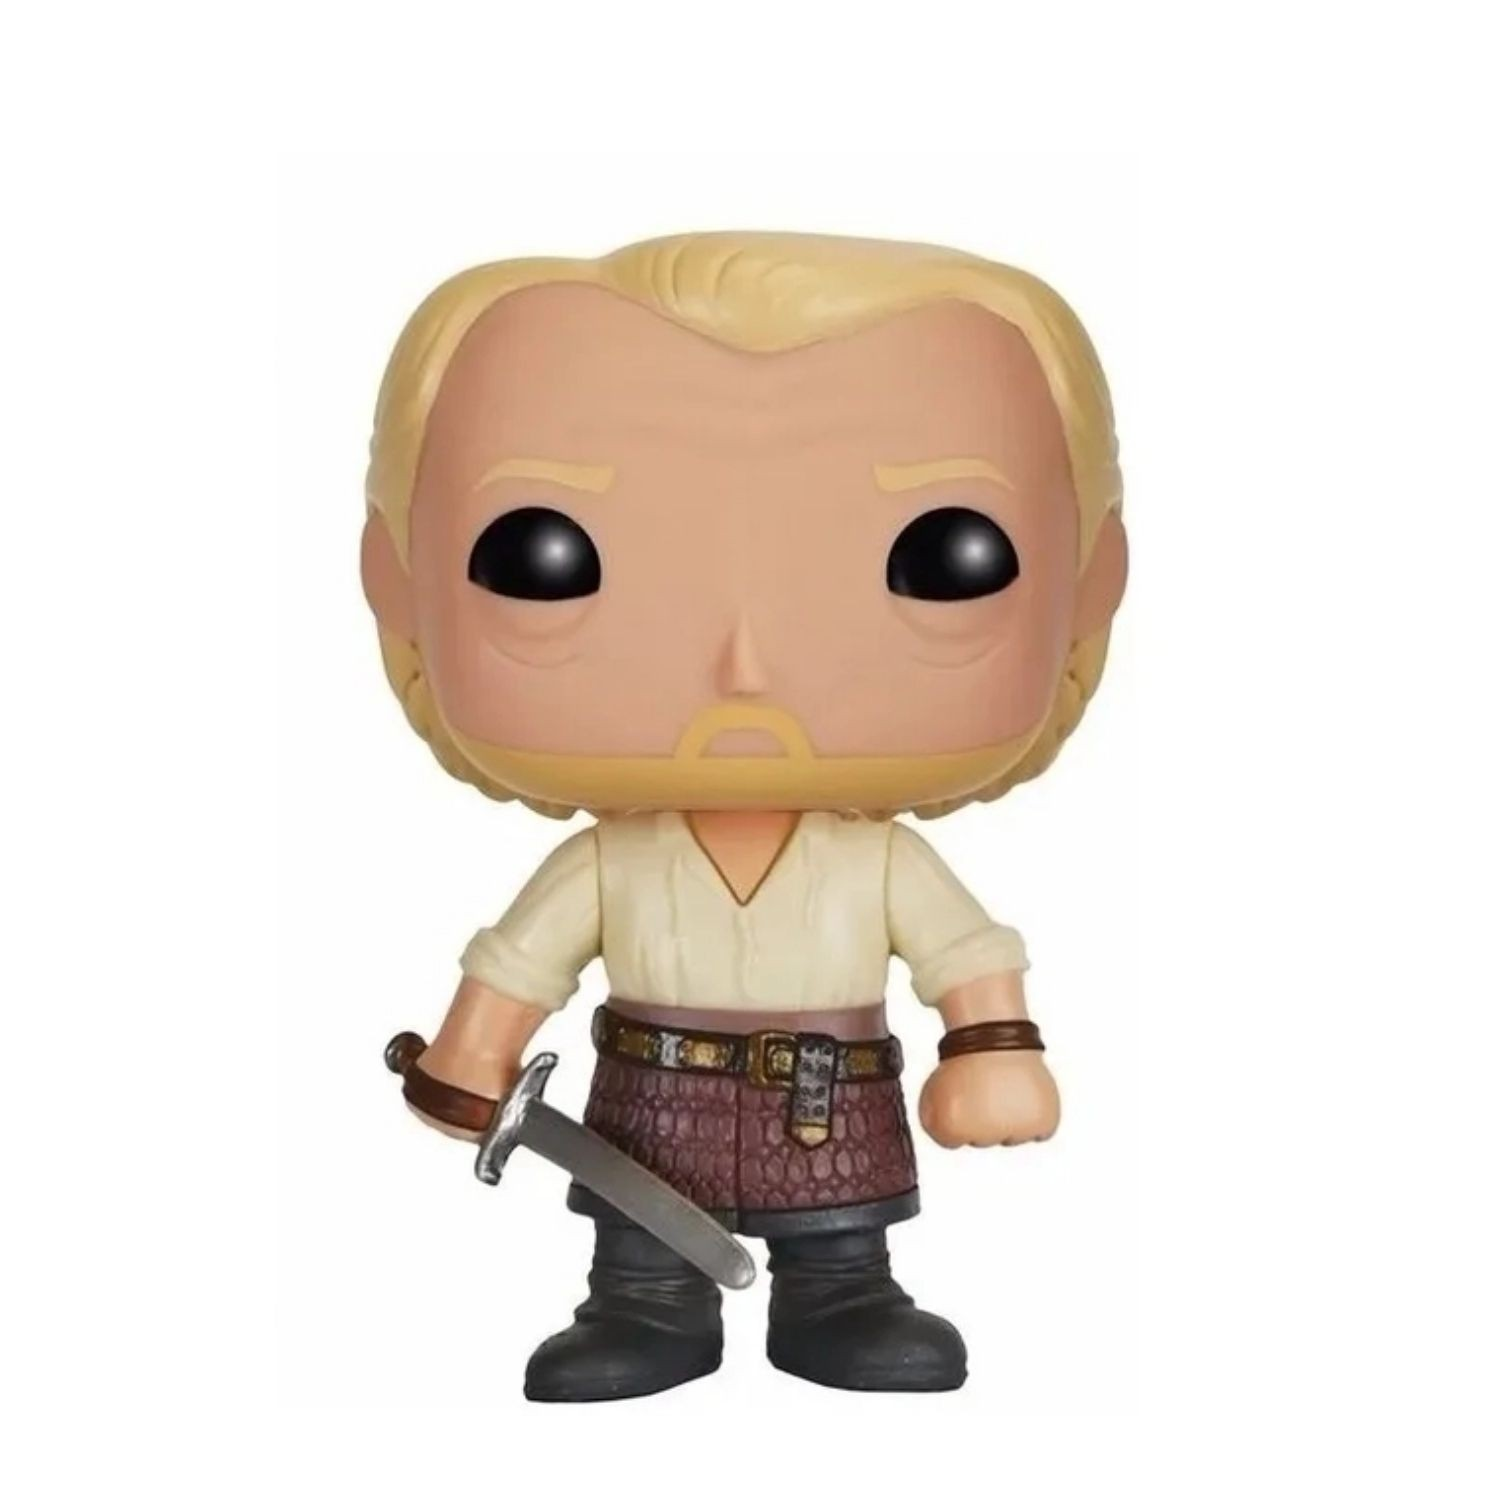 Funko Pop Jorah Mormont Game Of Thrones #40  - Game Land Brinquedos